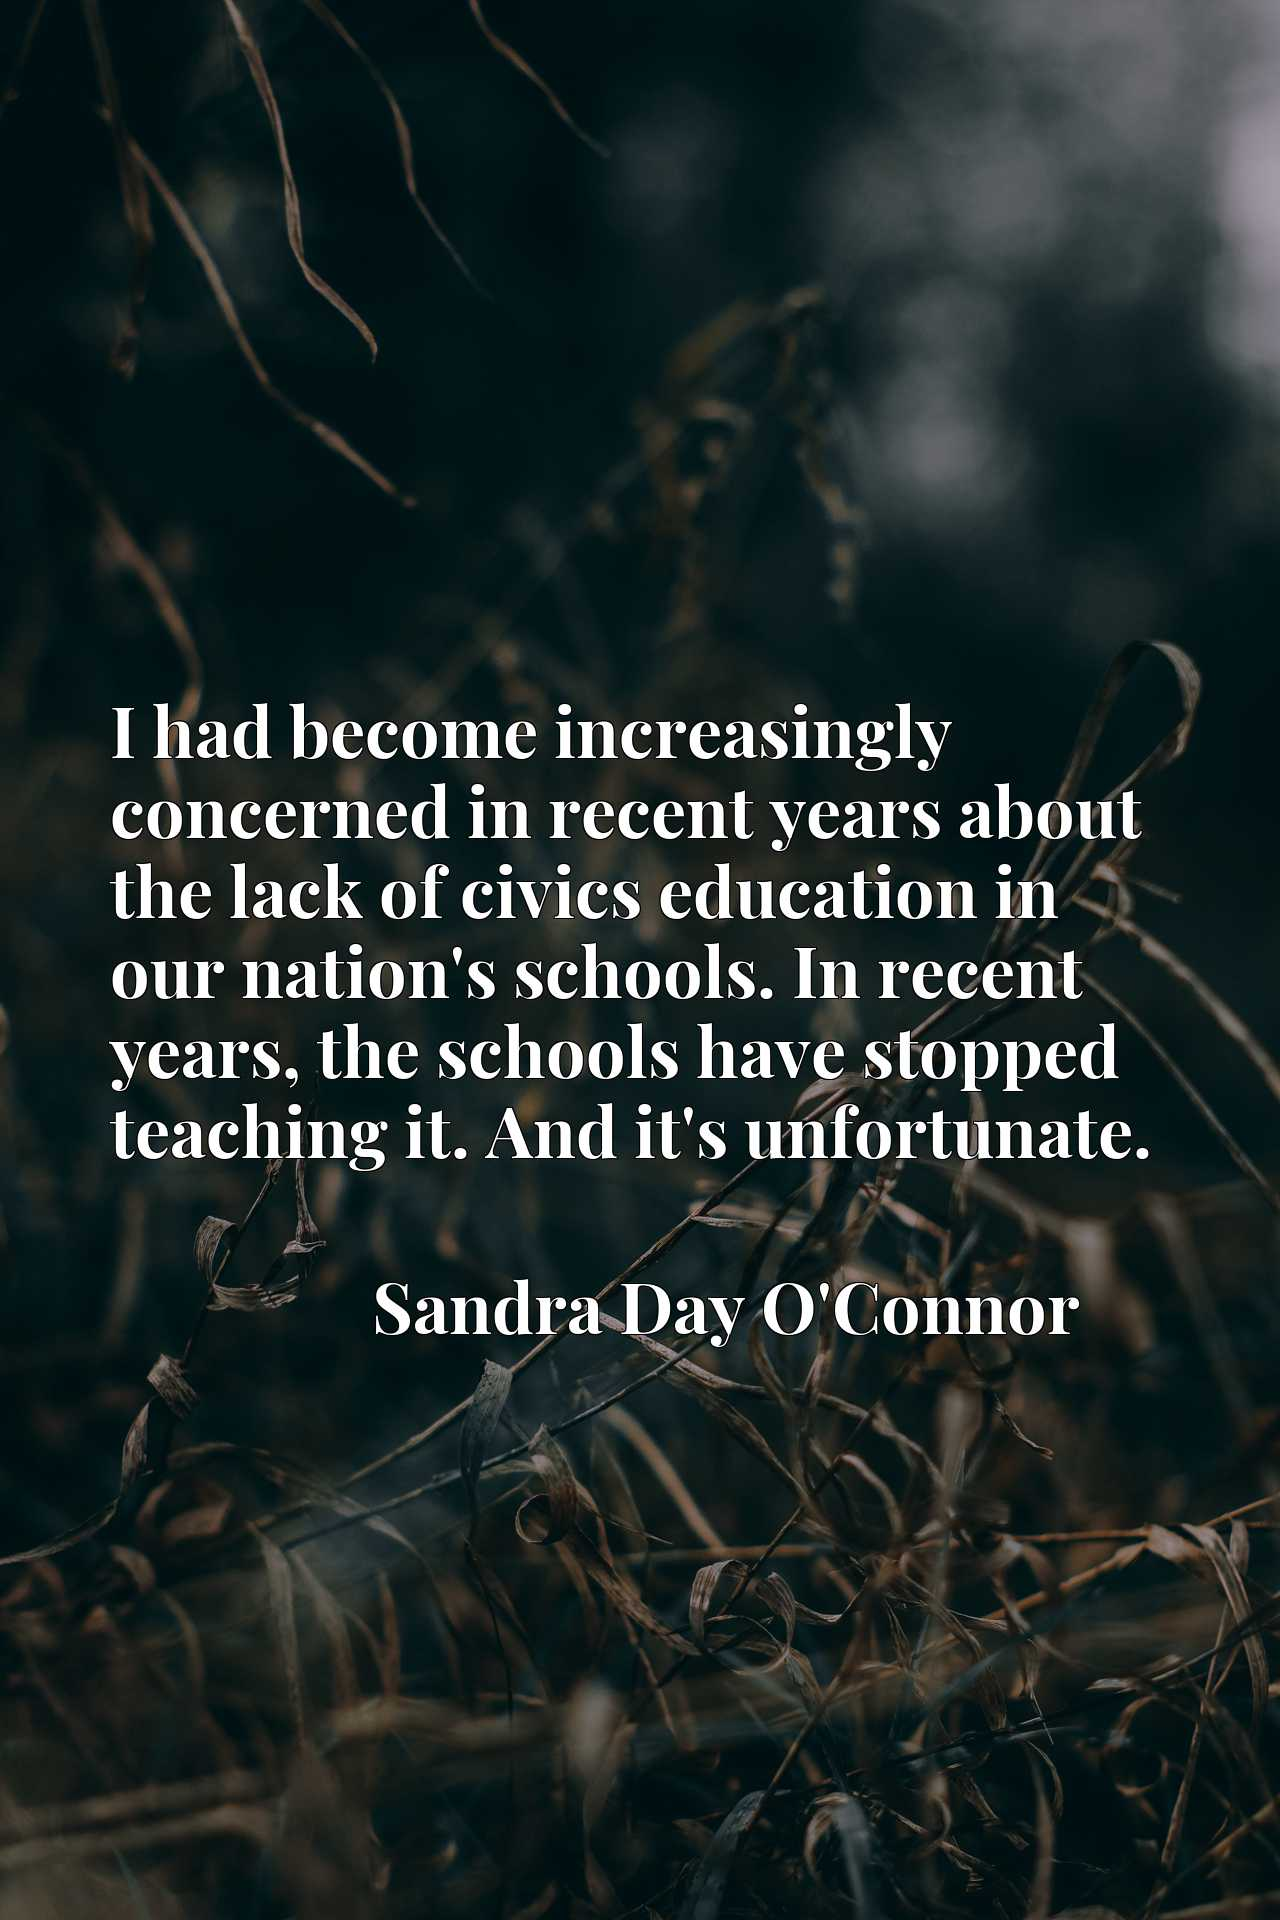 I had become increasingly concerned in recent years about the lack of civics education in our nation's schools. In recent years, the schools have stopped teaching it. And it's unfortunate.